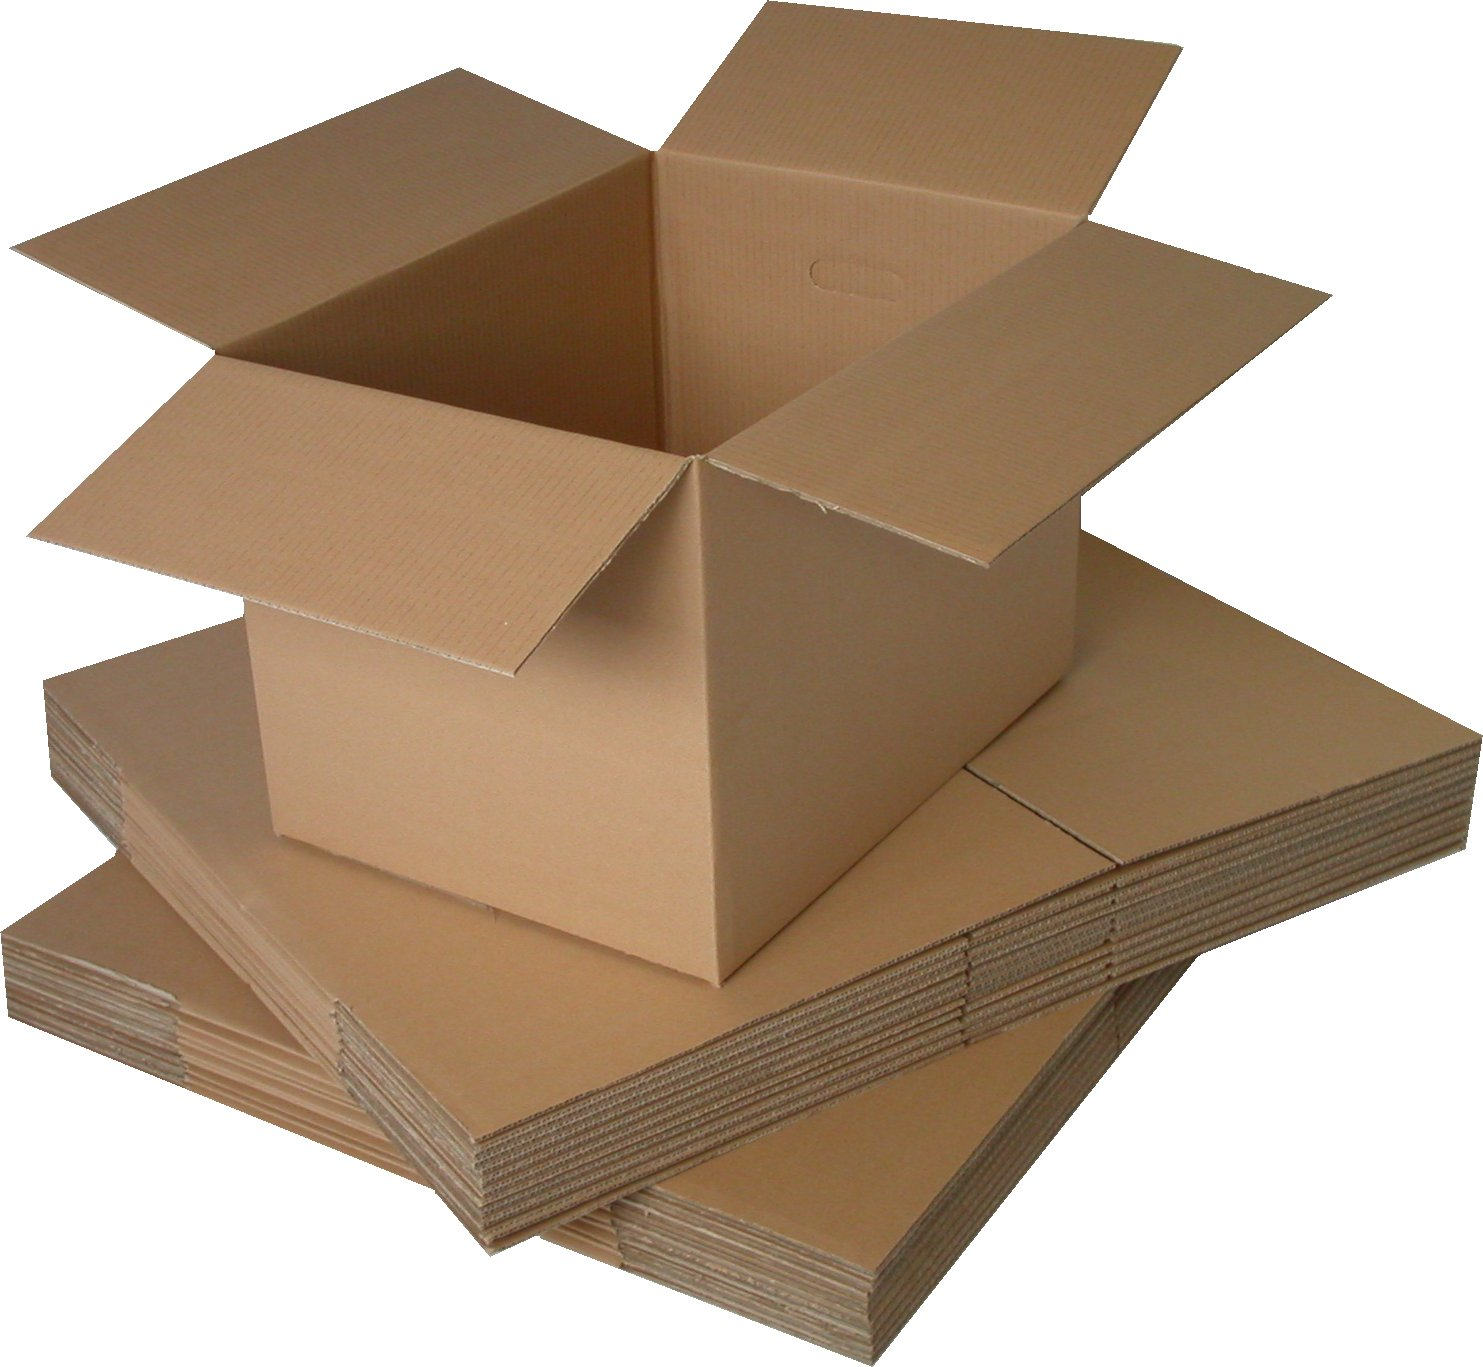 A pile of cardboard boxes flat packed with an open cardboard box on the top